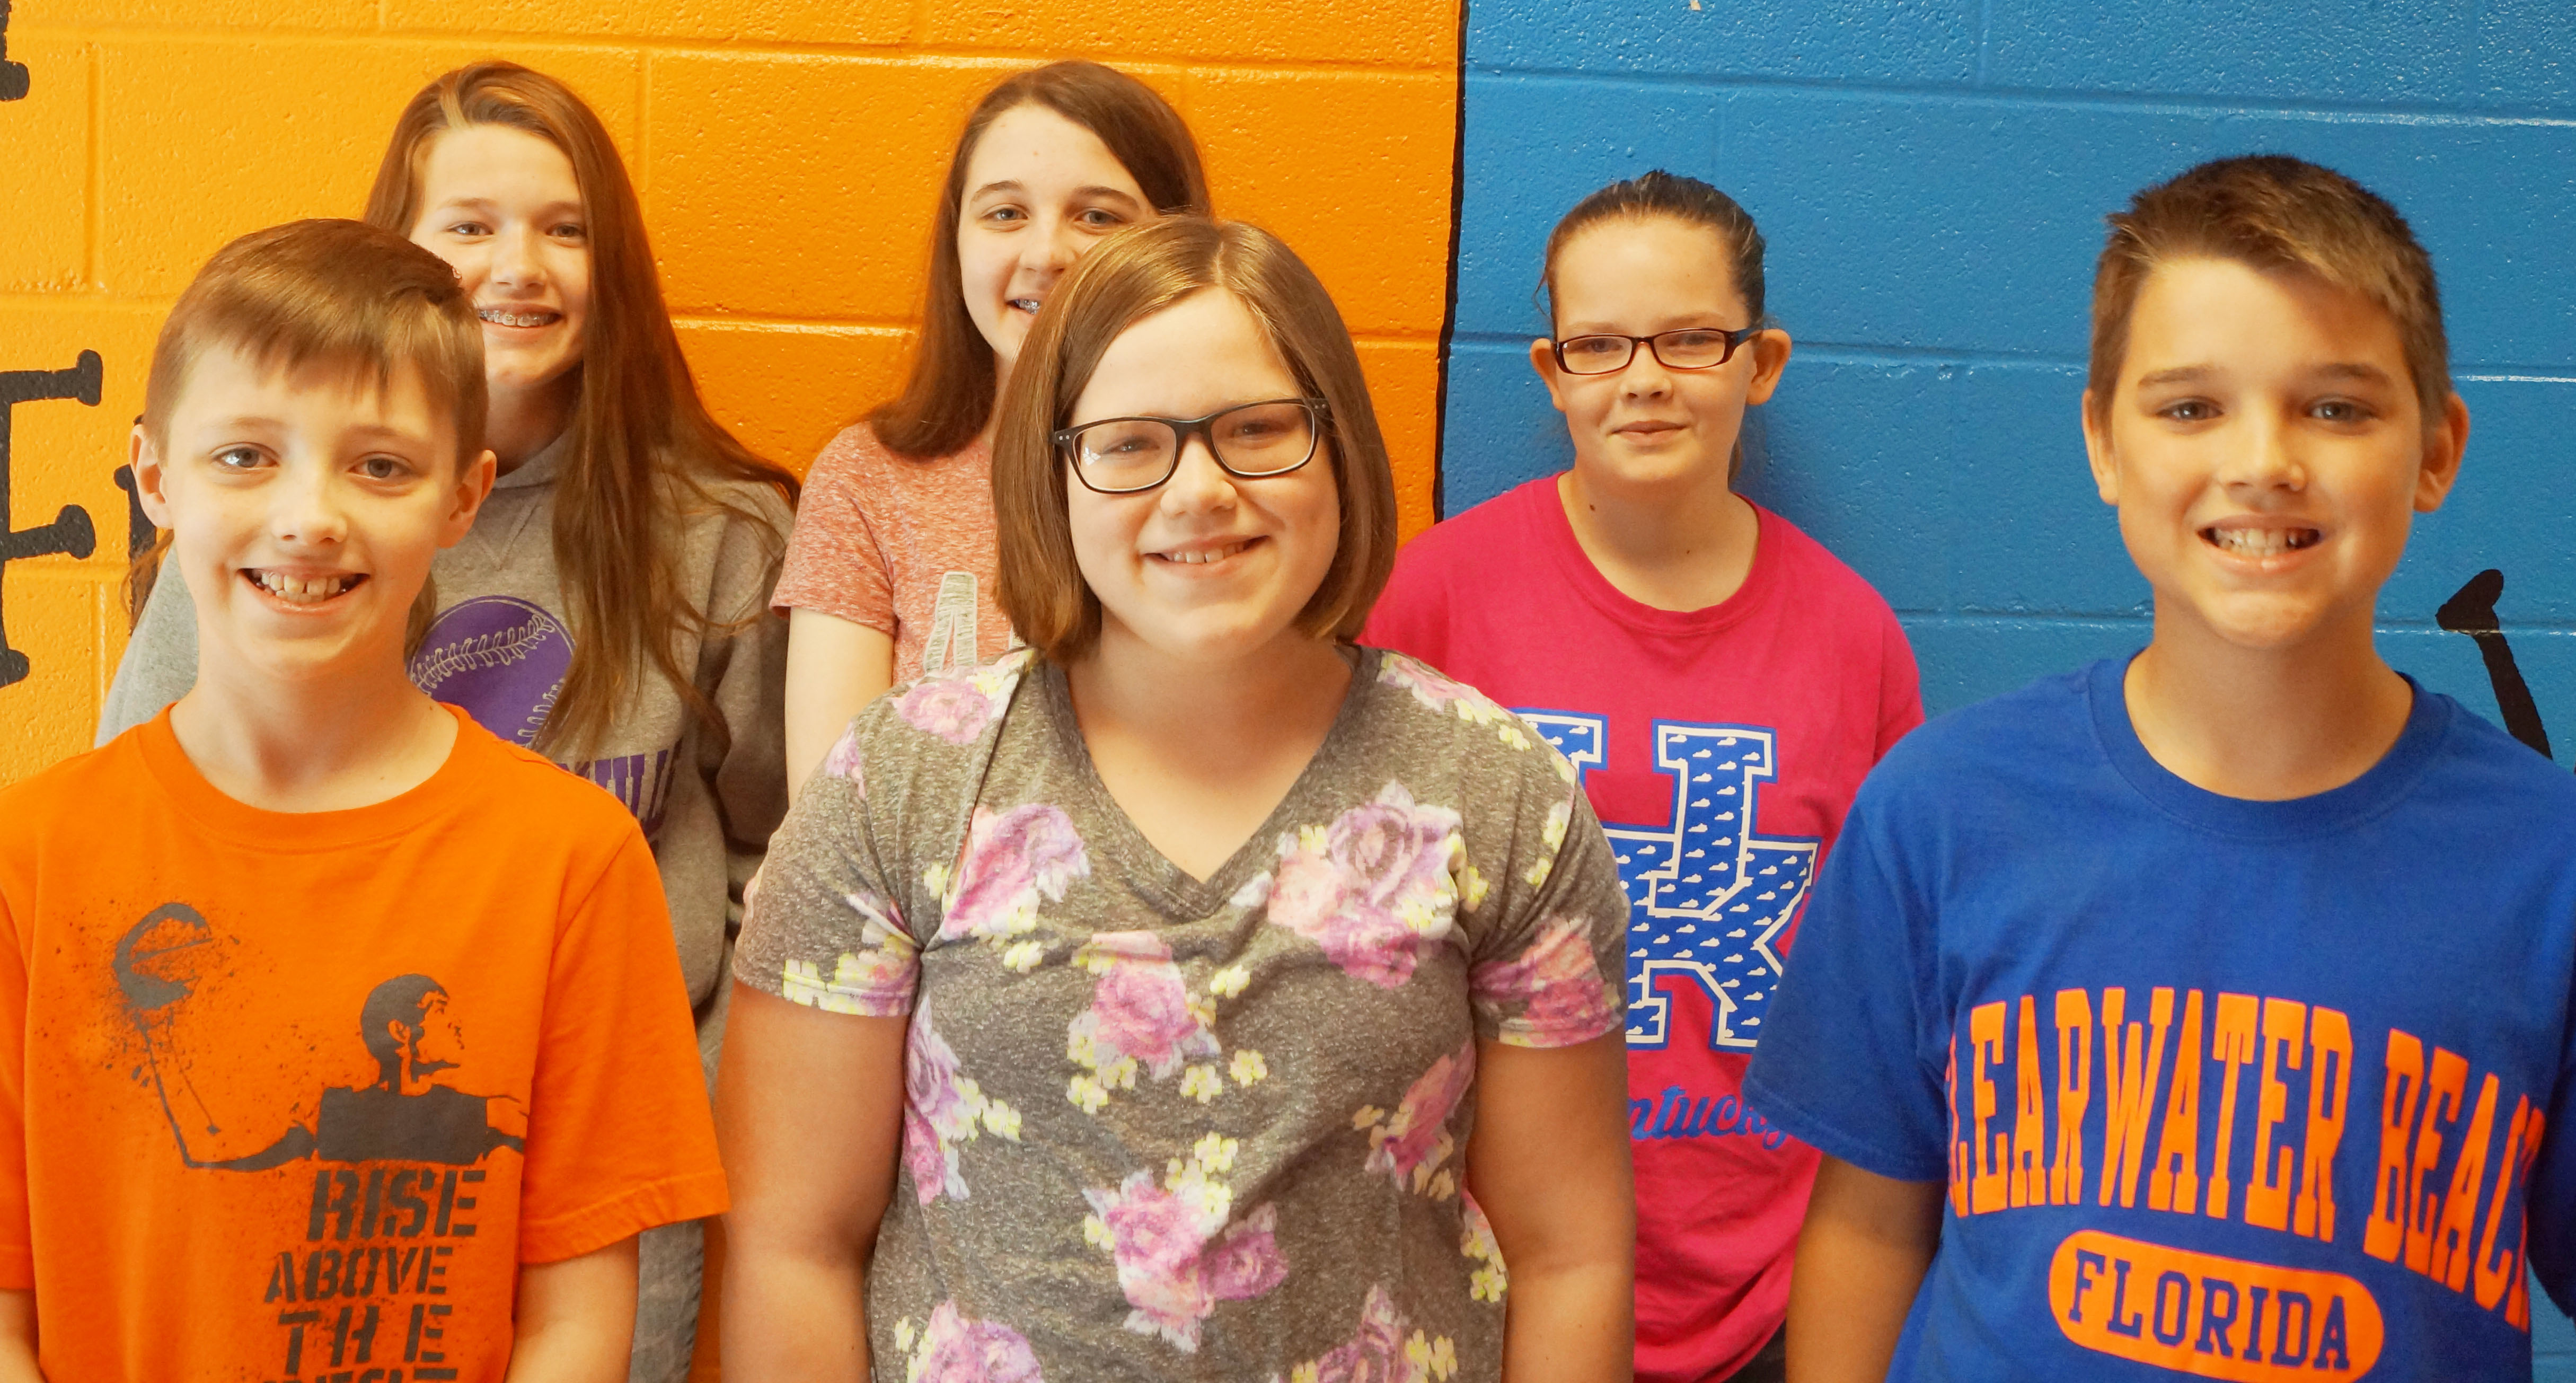 From left are fourth-grader Jaxon Garrett, sixth-grader BreAnna Humphress, eighth-grader Chloe Cox, fourth-grader Kaylyn Lawson, seventh-grader Xierra Underwood and fifth-grader Kaden Bloyd.